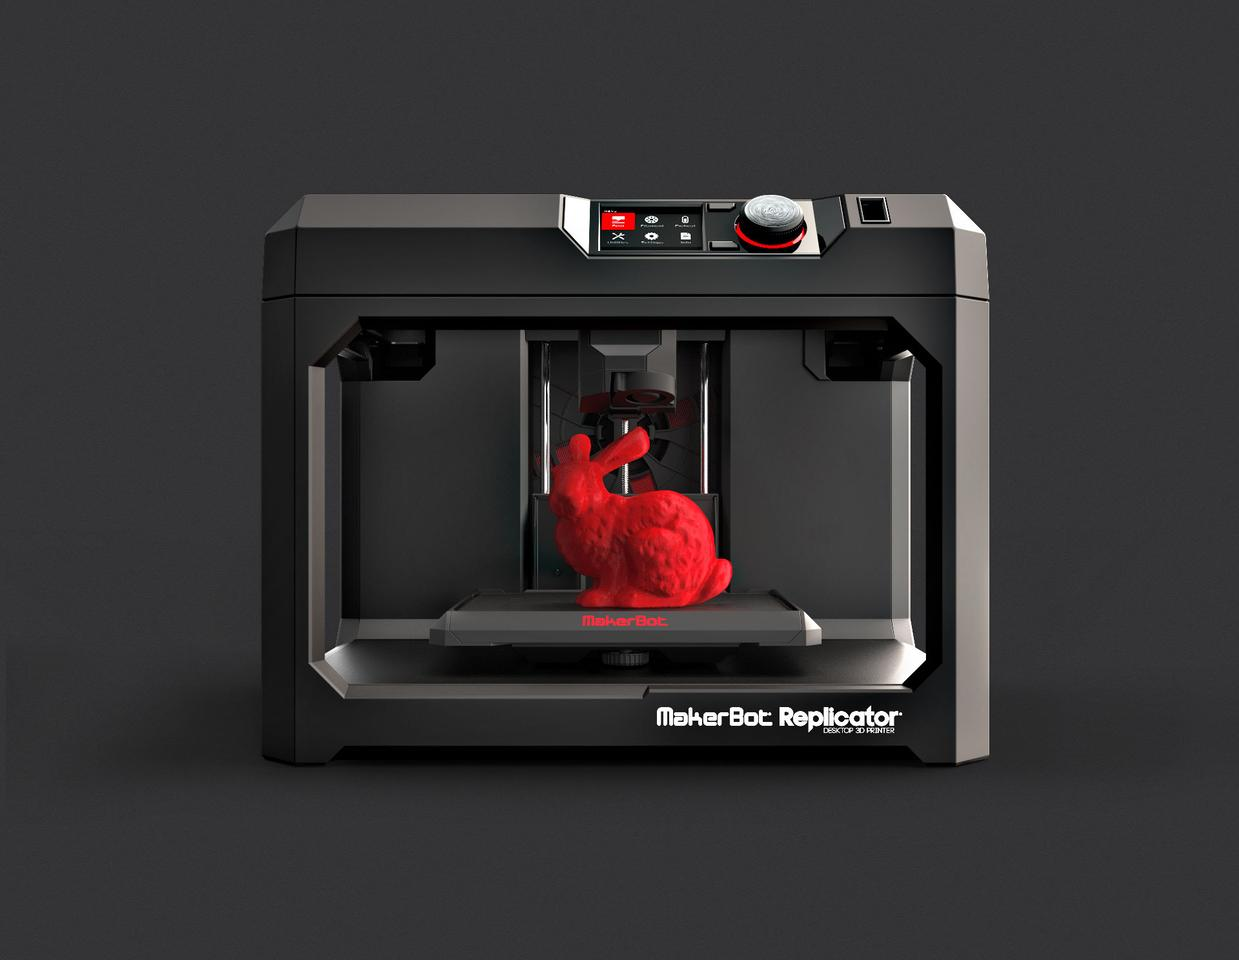 The MakerBot Replicator is the company's prosumer offering, a blend of professional printing at a consumer price